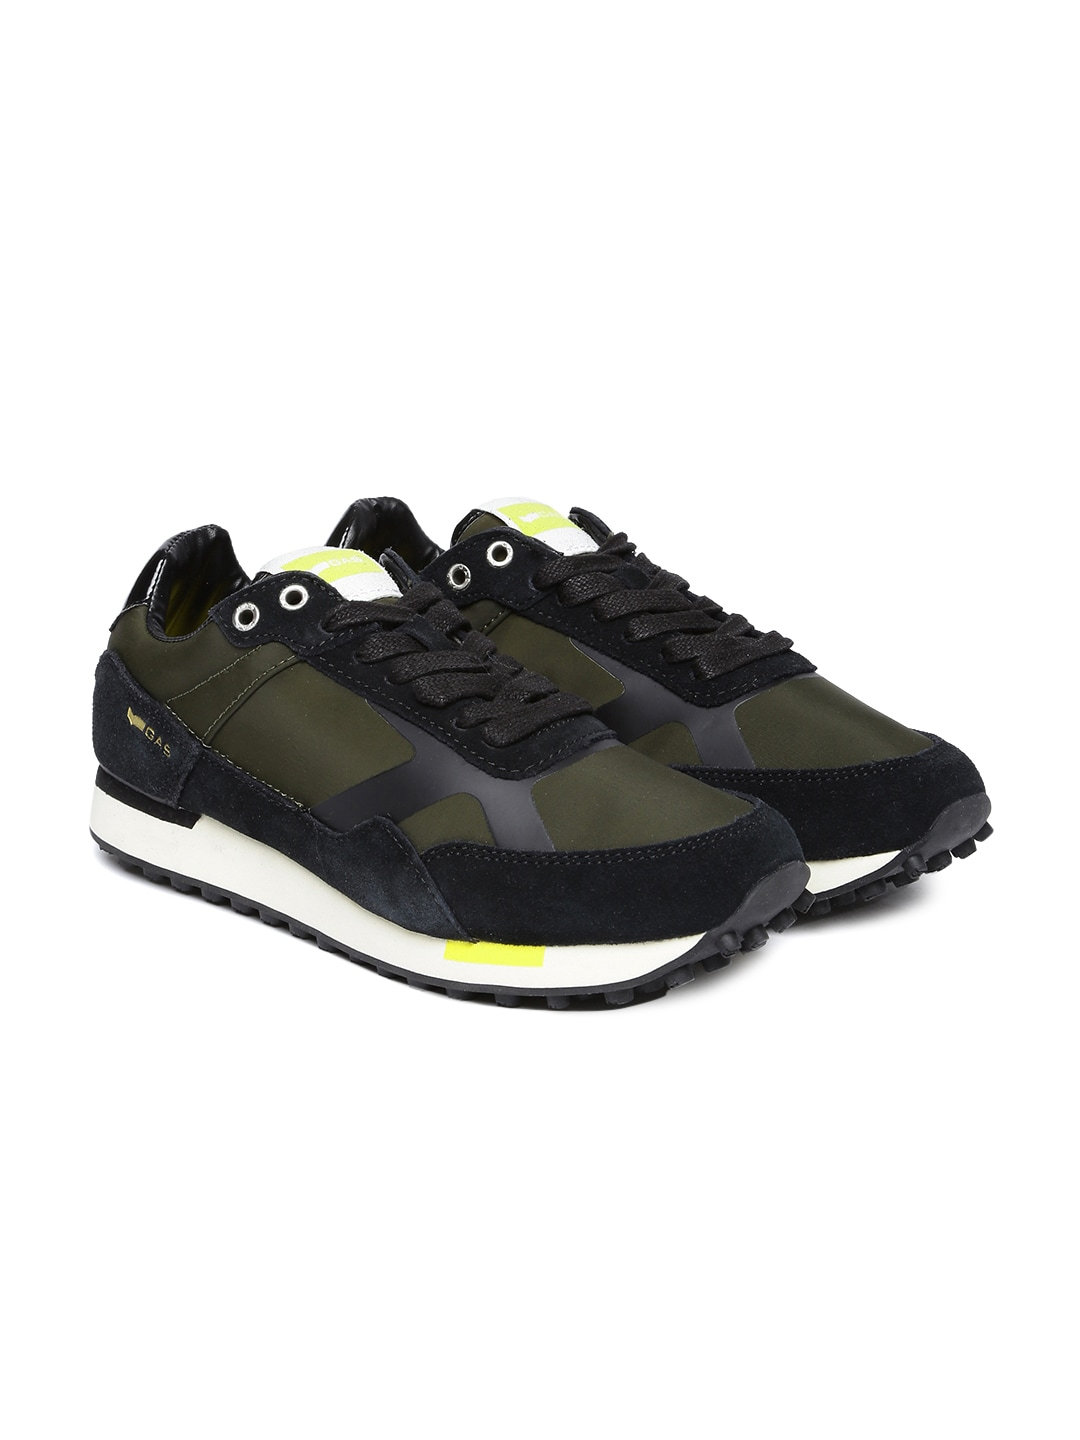 5e9e2f7f355 GAS Shoes - Buy GAS Shoes Online in India